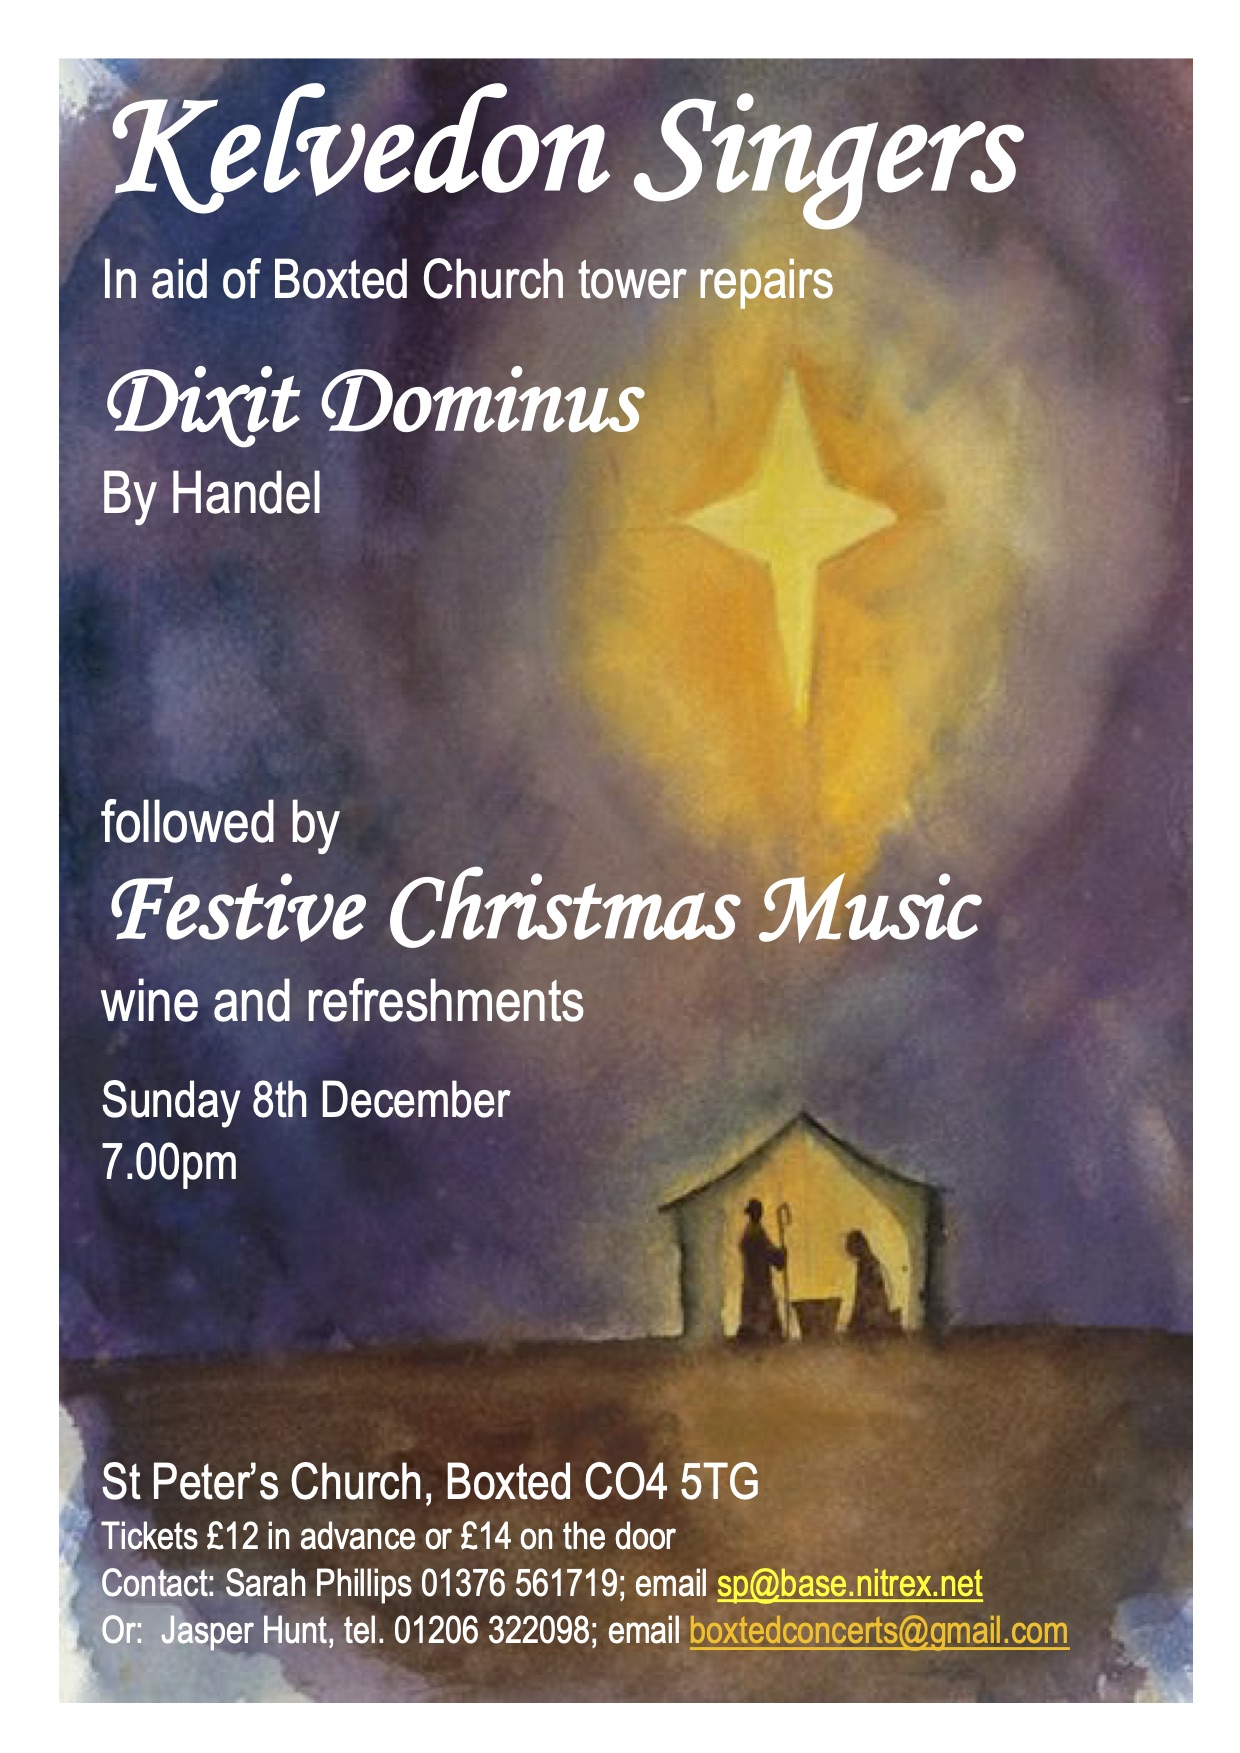 Kelvedon Singers Festive Christmas Music Sunday 8th Deember 7.00pm St Peter's Church, Boxtedwine and refreshments